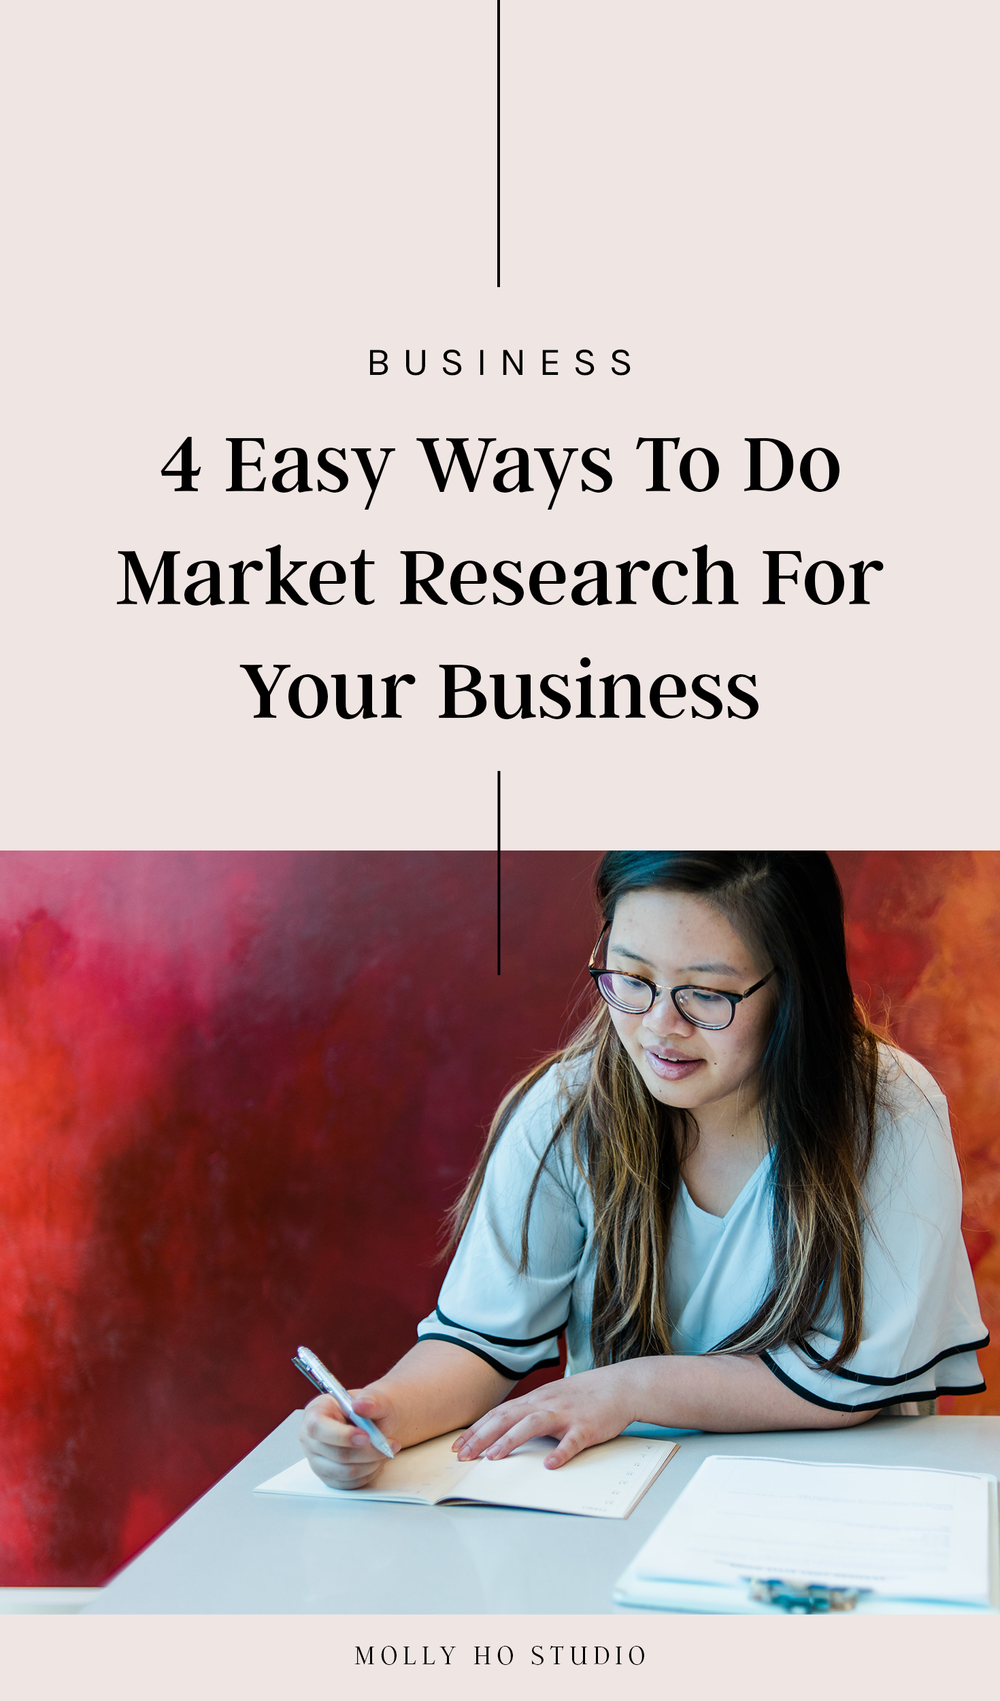 4 Easy Ways To Do Market Research For Your Business  How To Do Market Research for Your Small Business   What Is Market Research   Why Is Market Research Important   Marketing Research Examples   Content Strategy and Marketing   Blogging Tips for Small Businesses and Bloggers   Ideal Client Avatar Research   Personal Branding   Creative Entrepreneurship   Molly Ho Studio